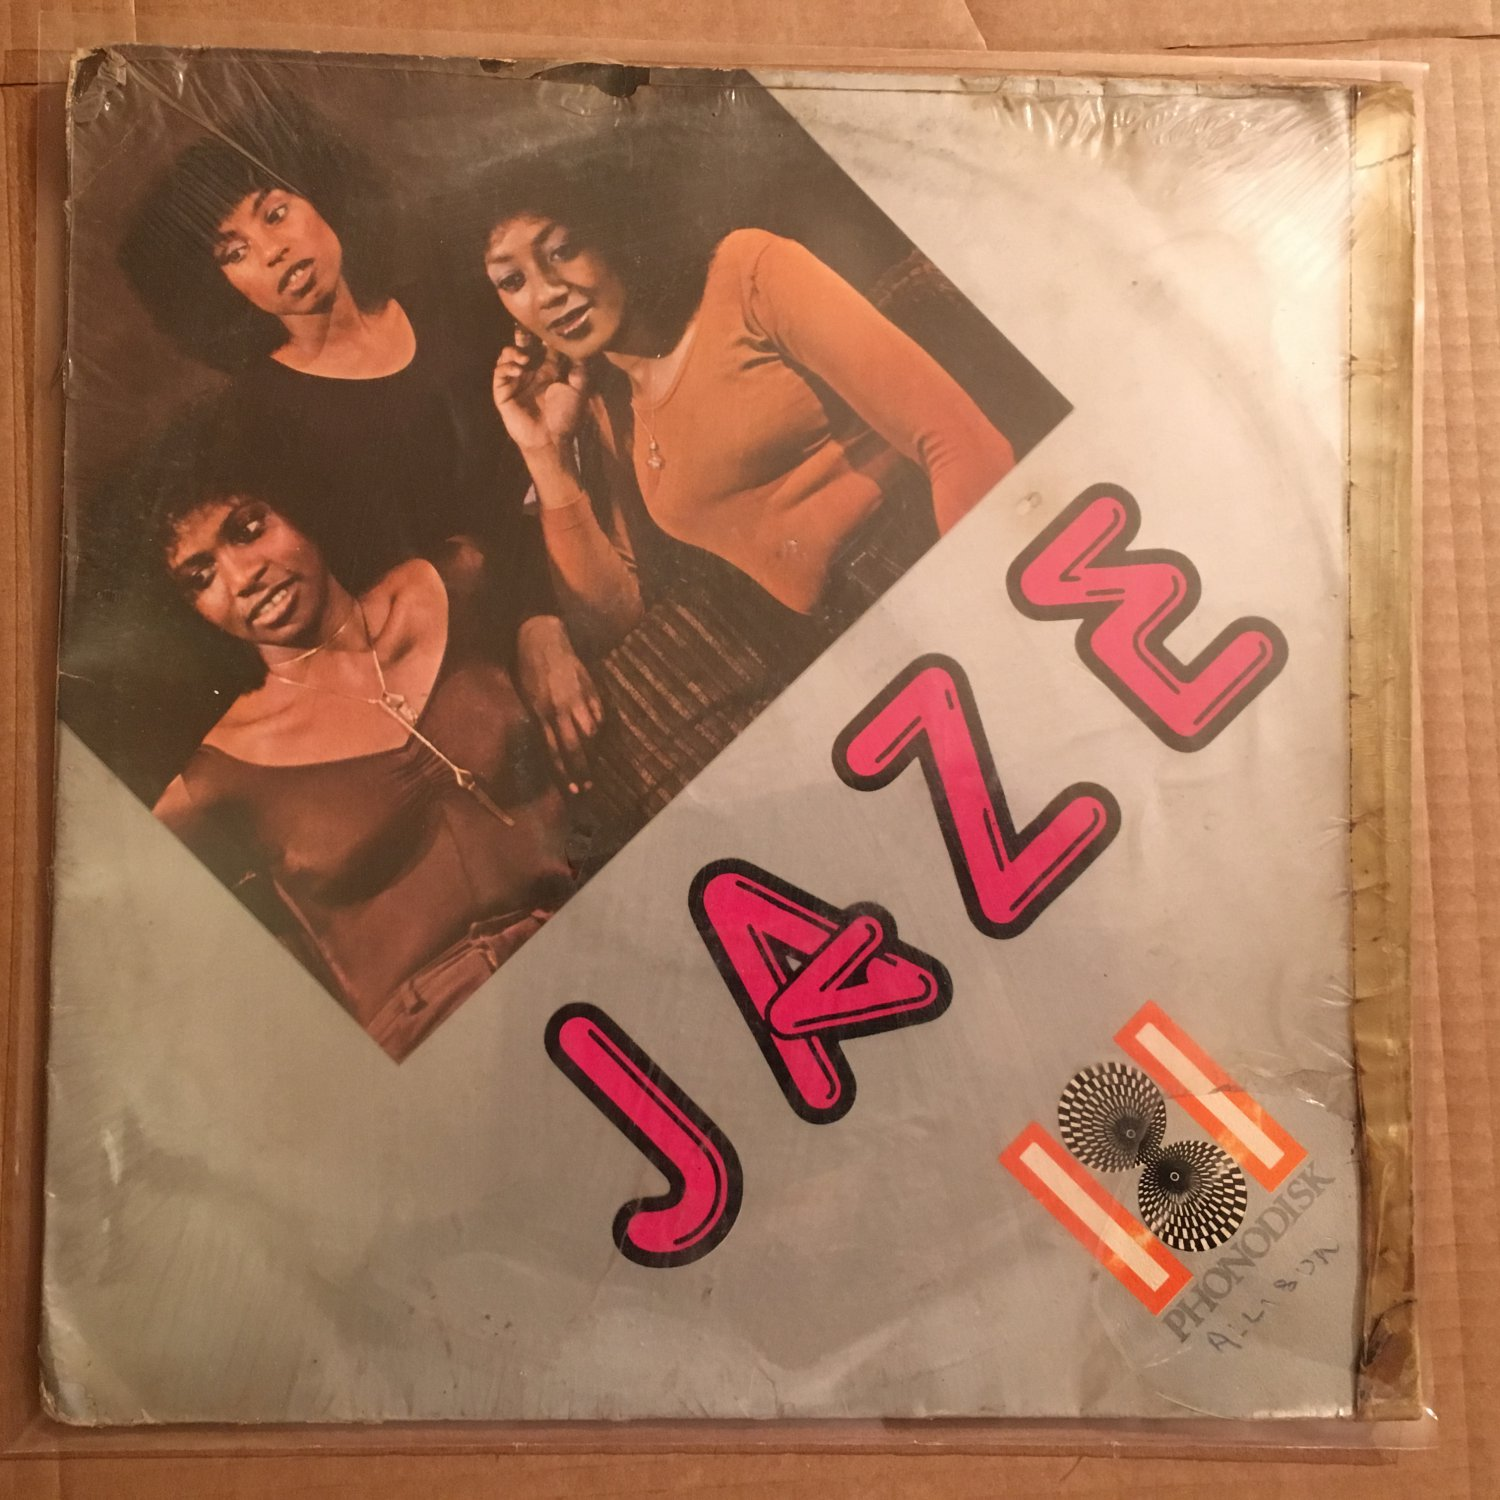 """JAZE 12"""" we wanna get down with you DISCO FUNK BOOGIE mp3 LISTEN"""